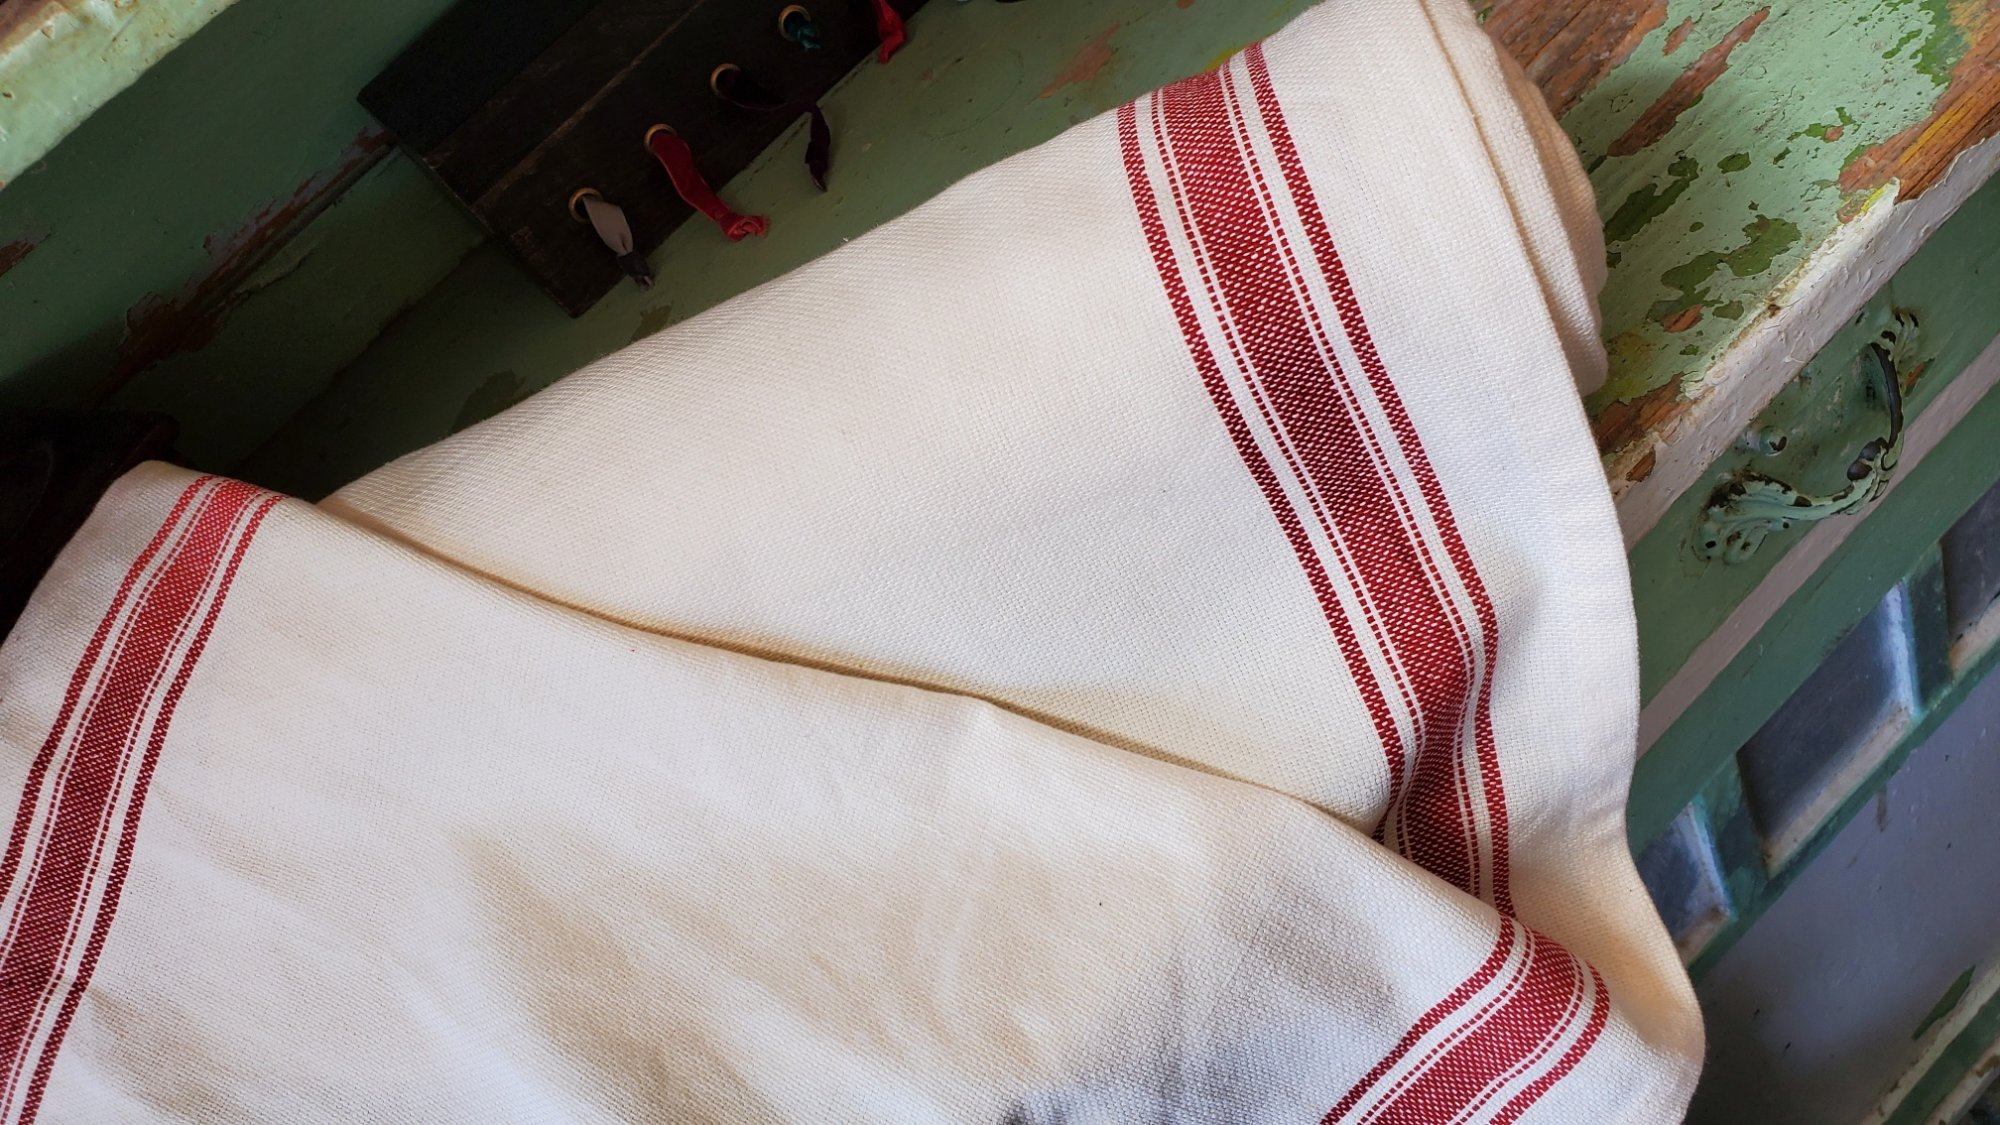 Red striped toweling